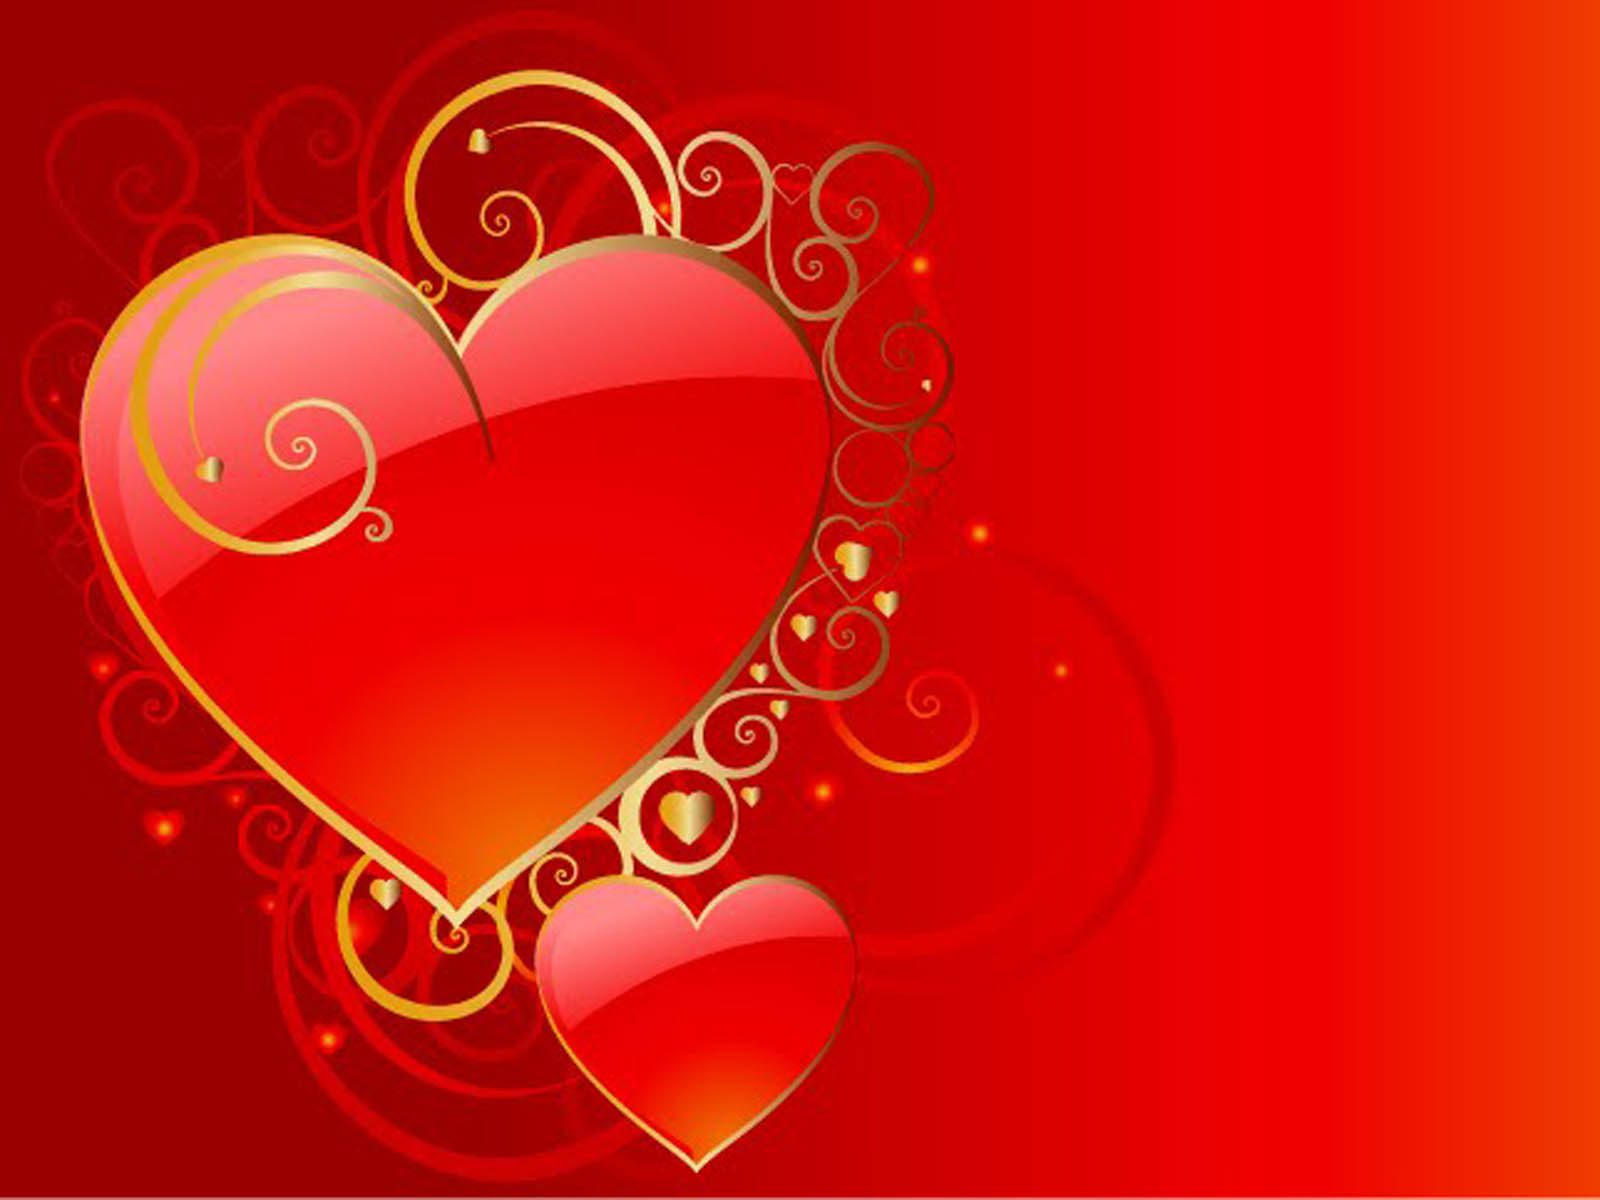 Love Wallpapers Set : wallpapers: Love Heart Wallpapers